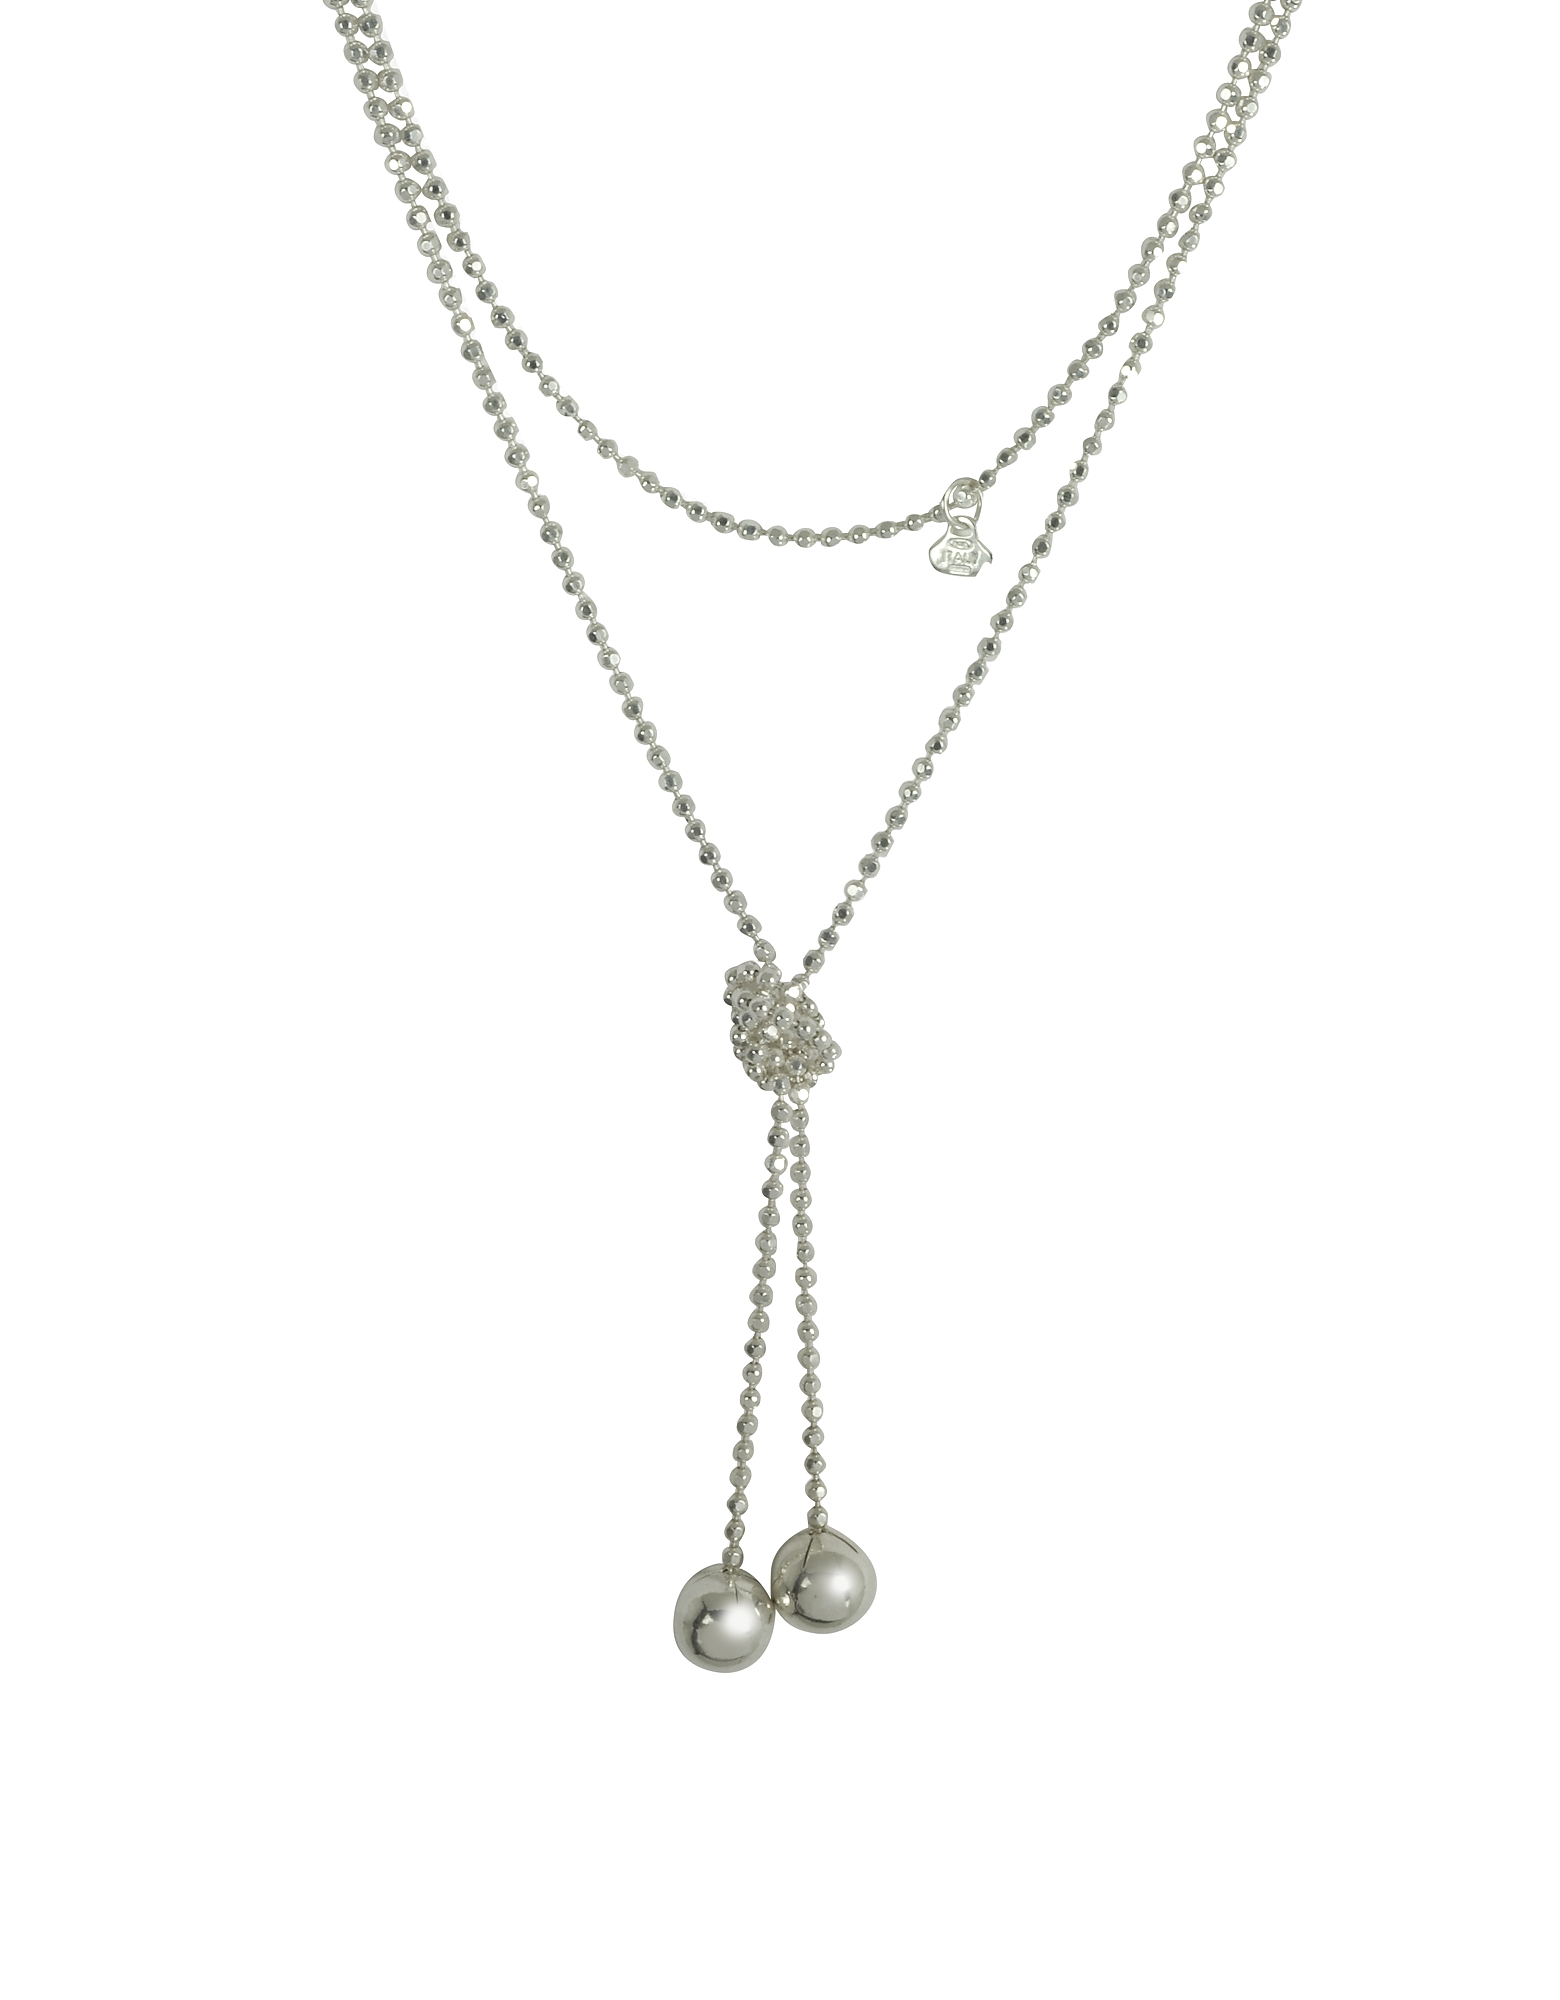 Rosato Designer Necklaces, Sterling Silver Beads Self-Tie Necklace